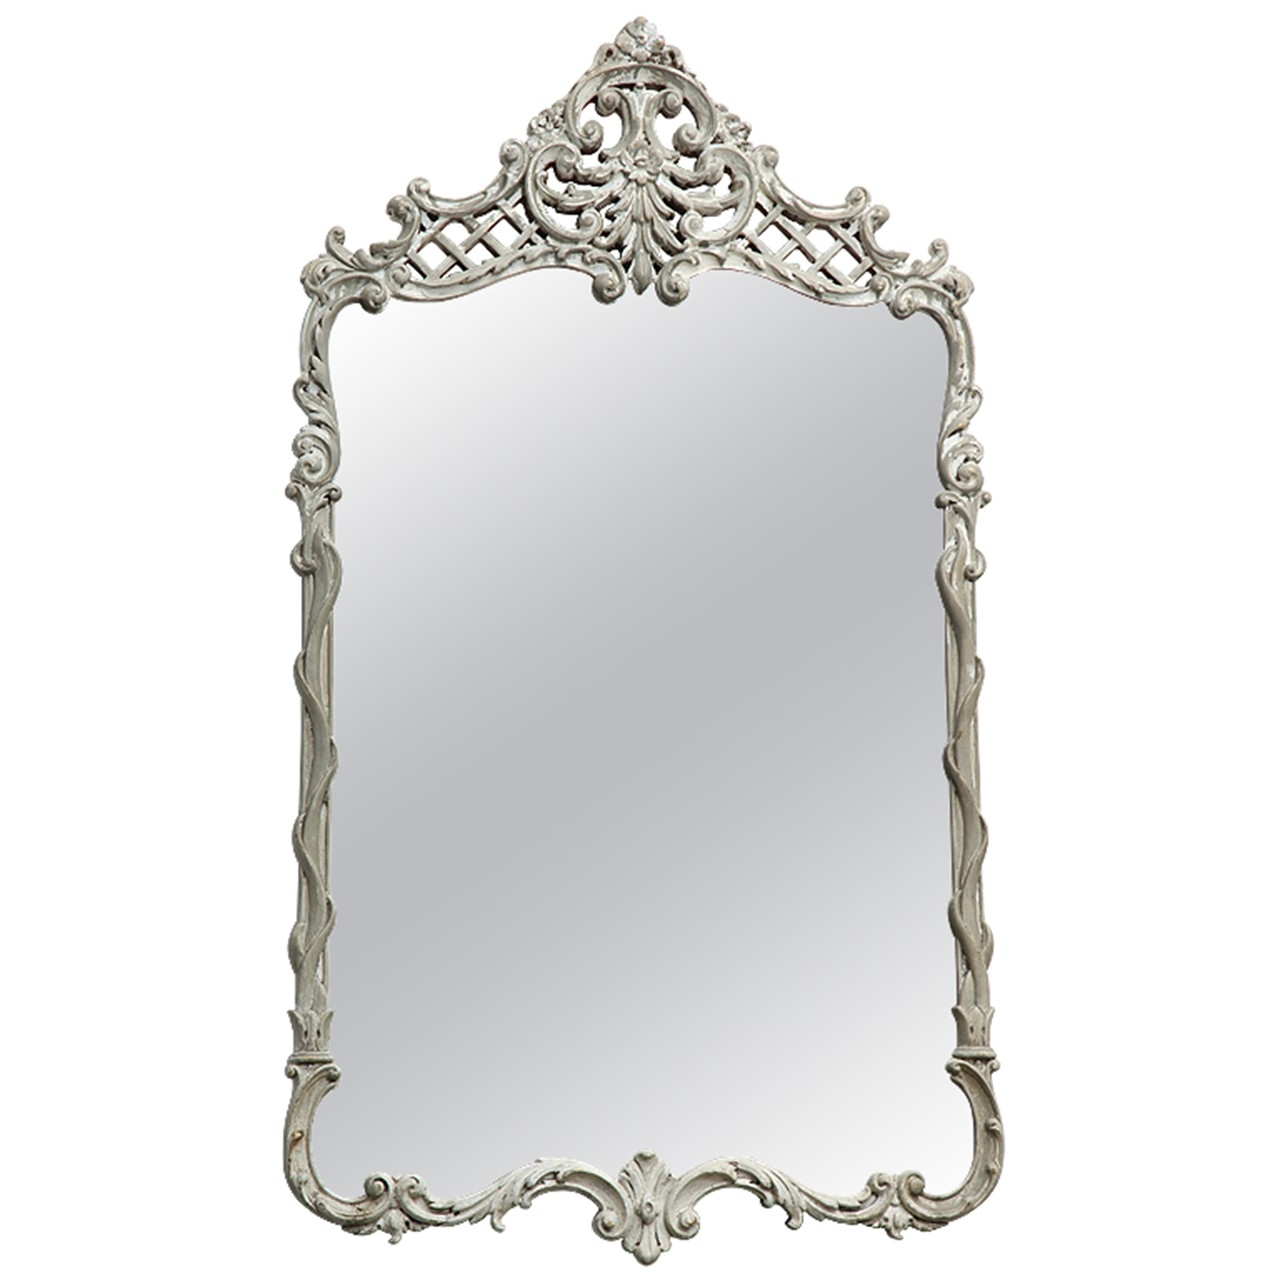 French Rococo Mirror Prudence Designs Events Prudence Pertaining To Rococo Mirrors (View 11 of 15)